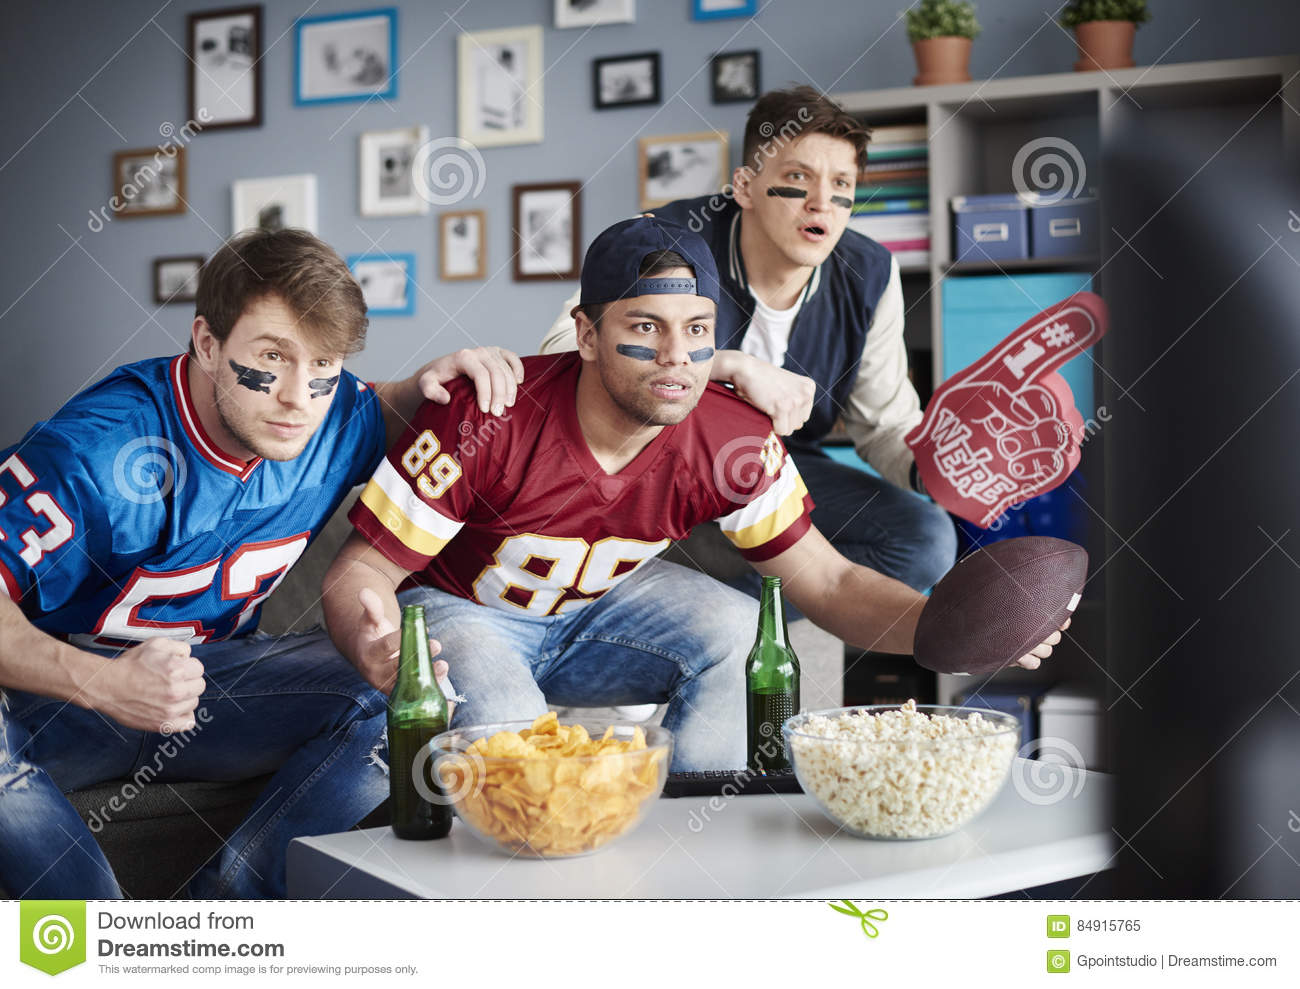 https://thumbs.dreamstime.com/z/watching-football-game-three-adult-guys-anticipation-next-score-84915765.jpg